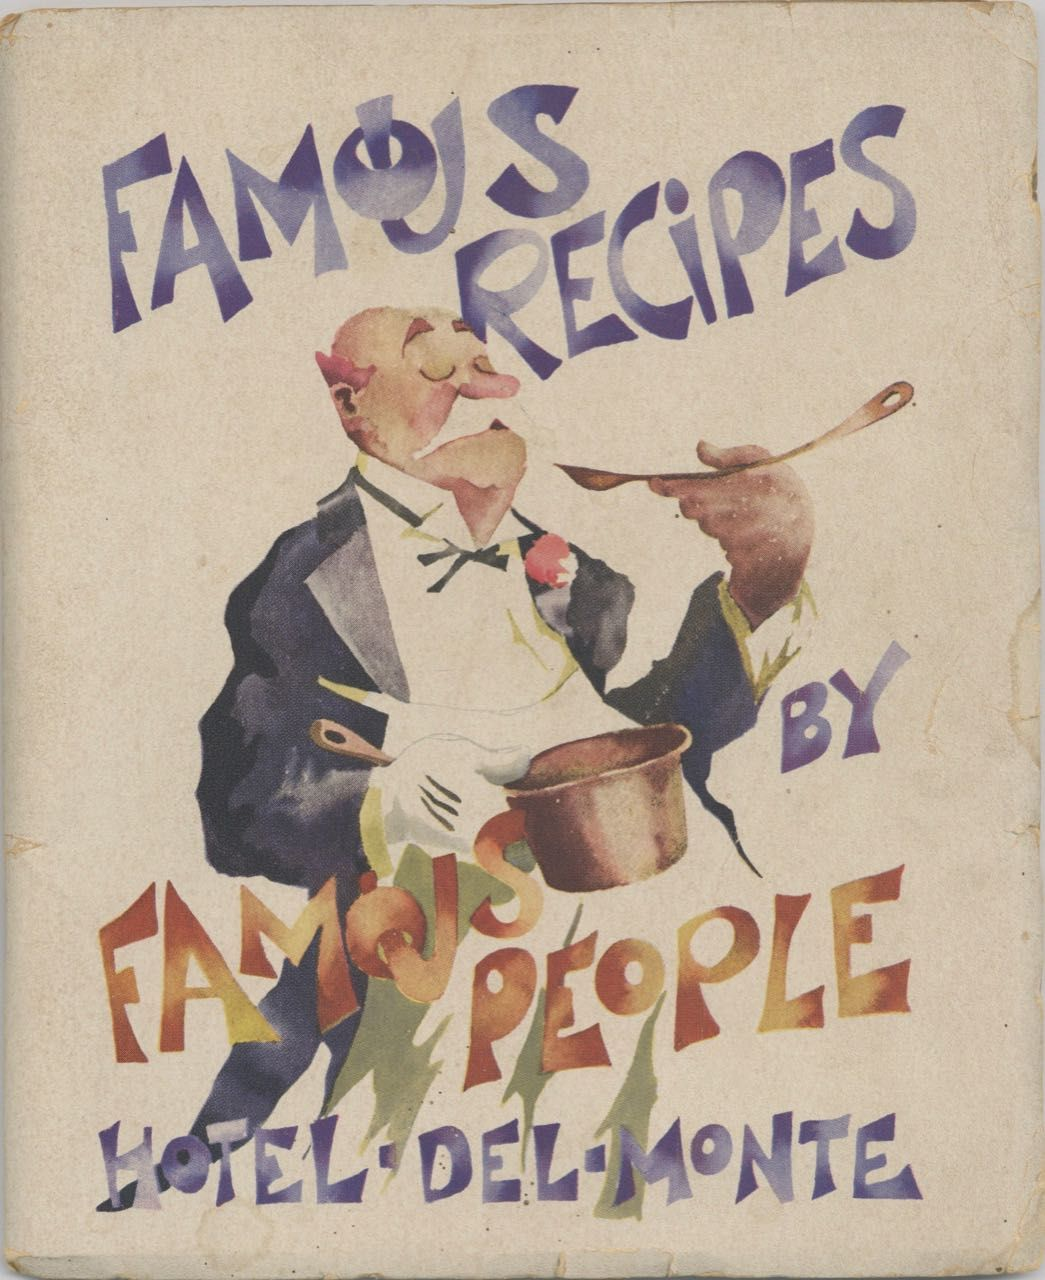 Famous Recipes by Famous People. Illustrated by Paul Whitman. John Steinbeck, Zane Grey Robinson Jeffers, Rube Goldberg, Sinclair Lewis, Sherwood Anderson, William Beebe, Gertrude Stein, Disney, Walt, Edgar Rice Burroughs, H. L. Mencken, ed Herbert Cerwin.